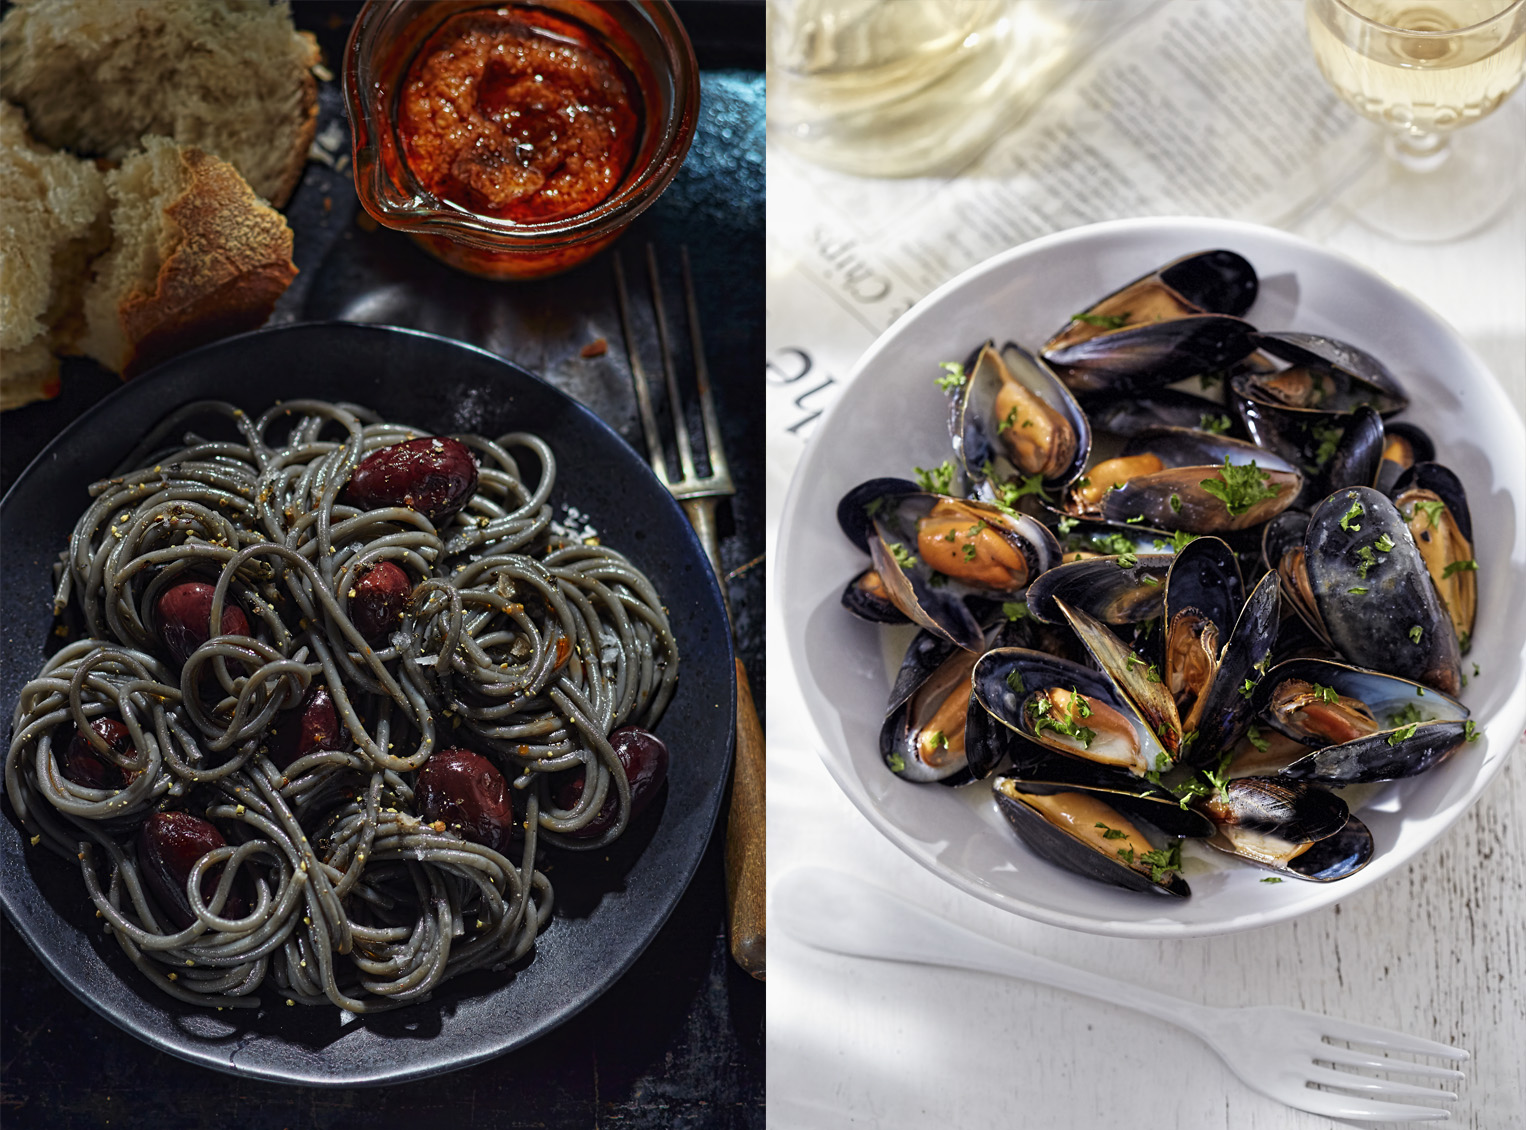 Black pasta with black olives and mussles in white wine